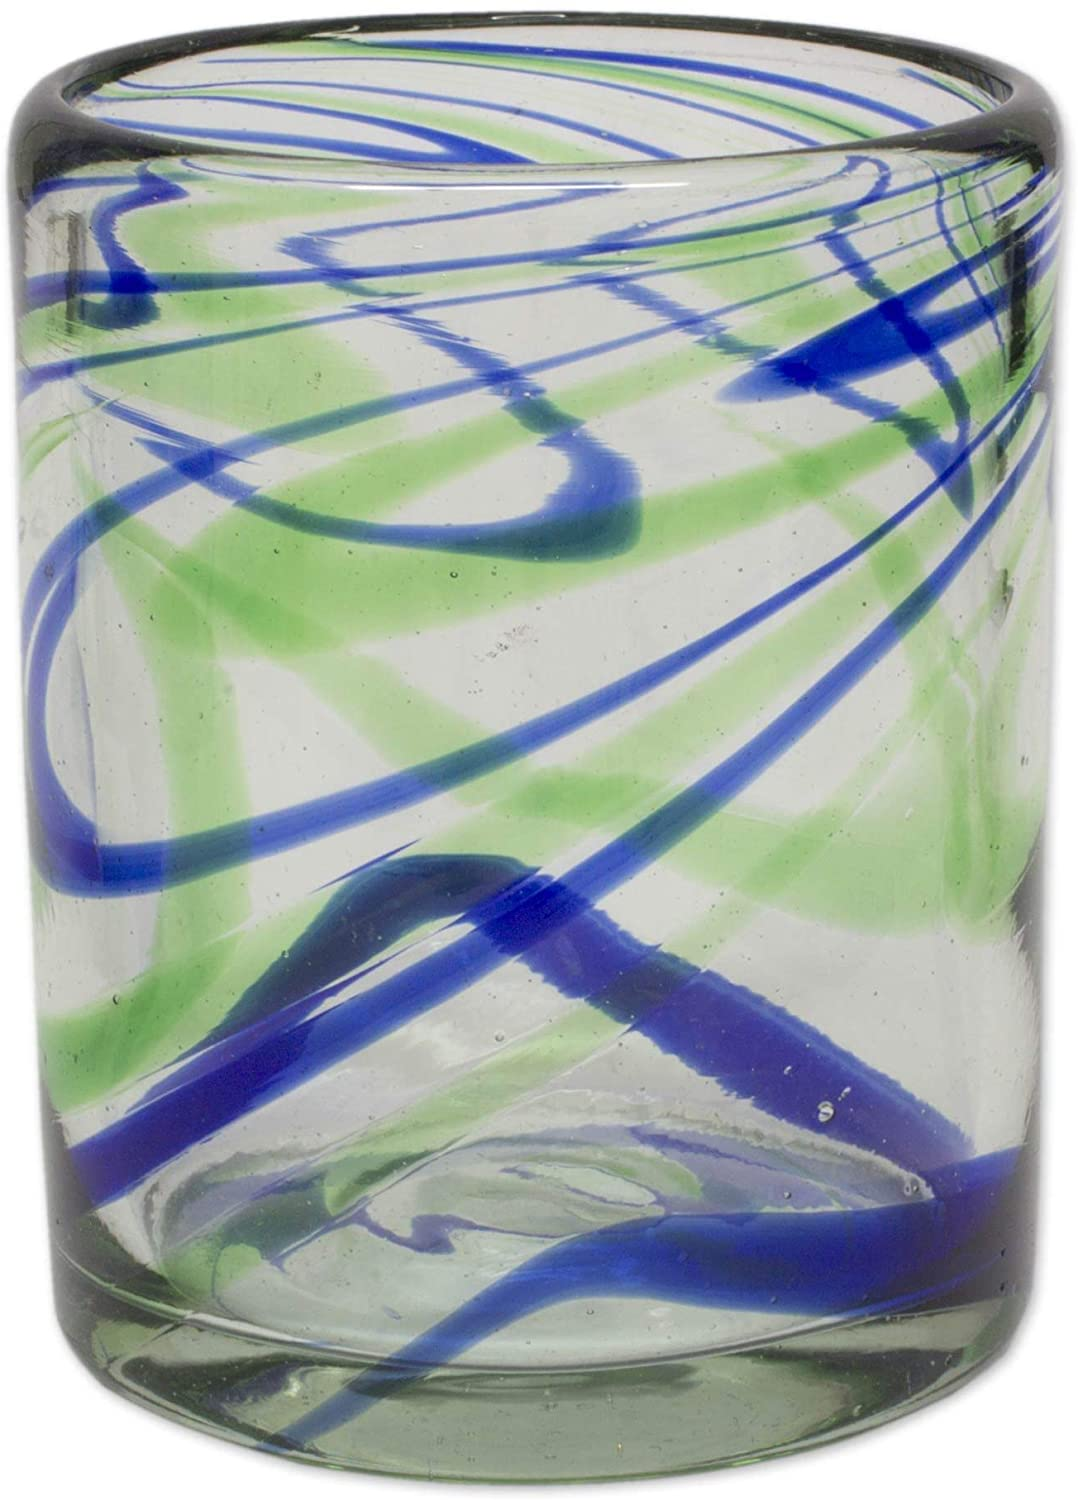 Handmade Emerald Green/Cobalt Blue Glass Elegant Energy Juice Glasses (Set 6) (Mexico) Green